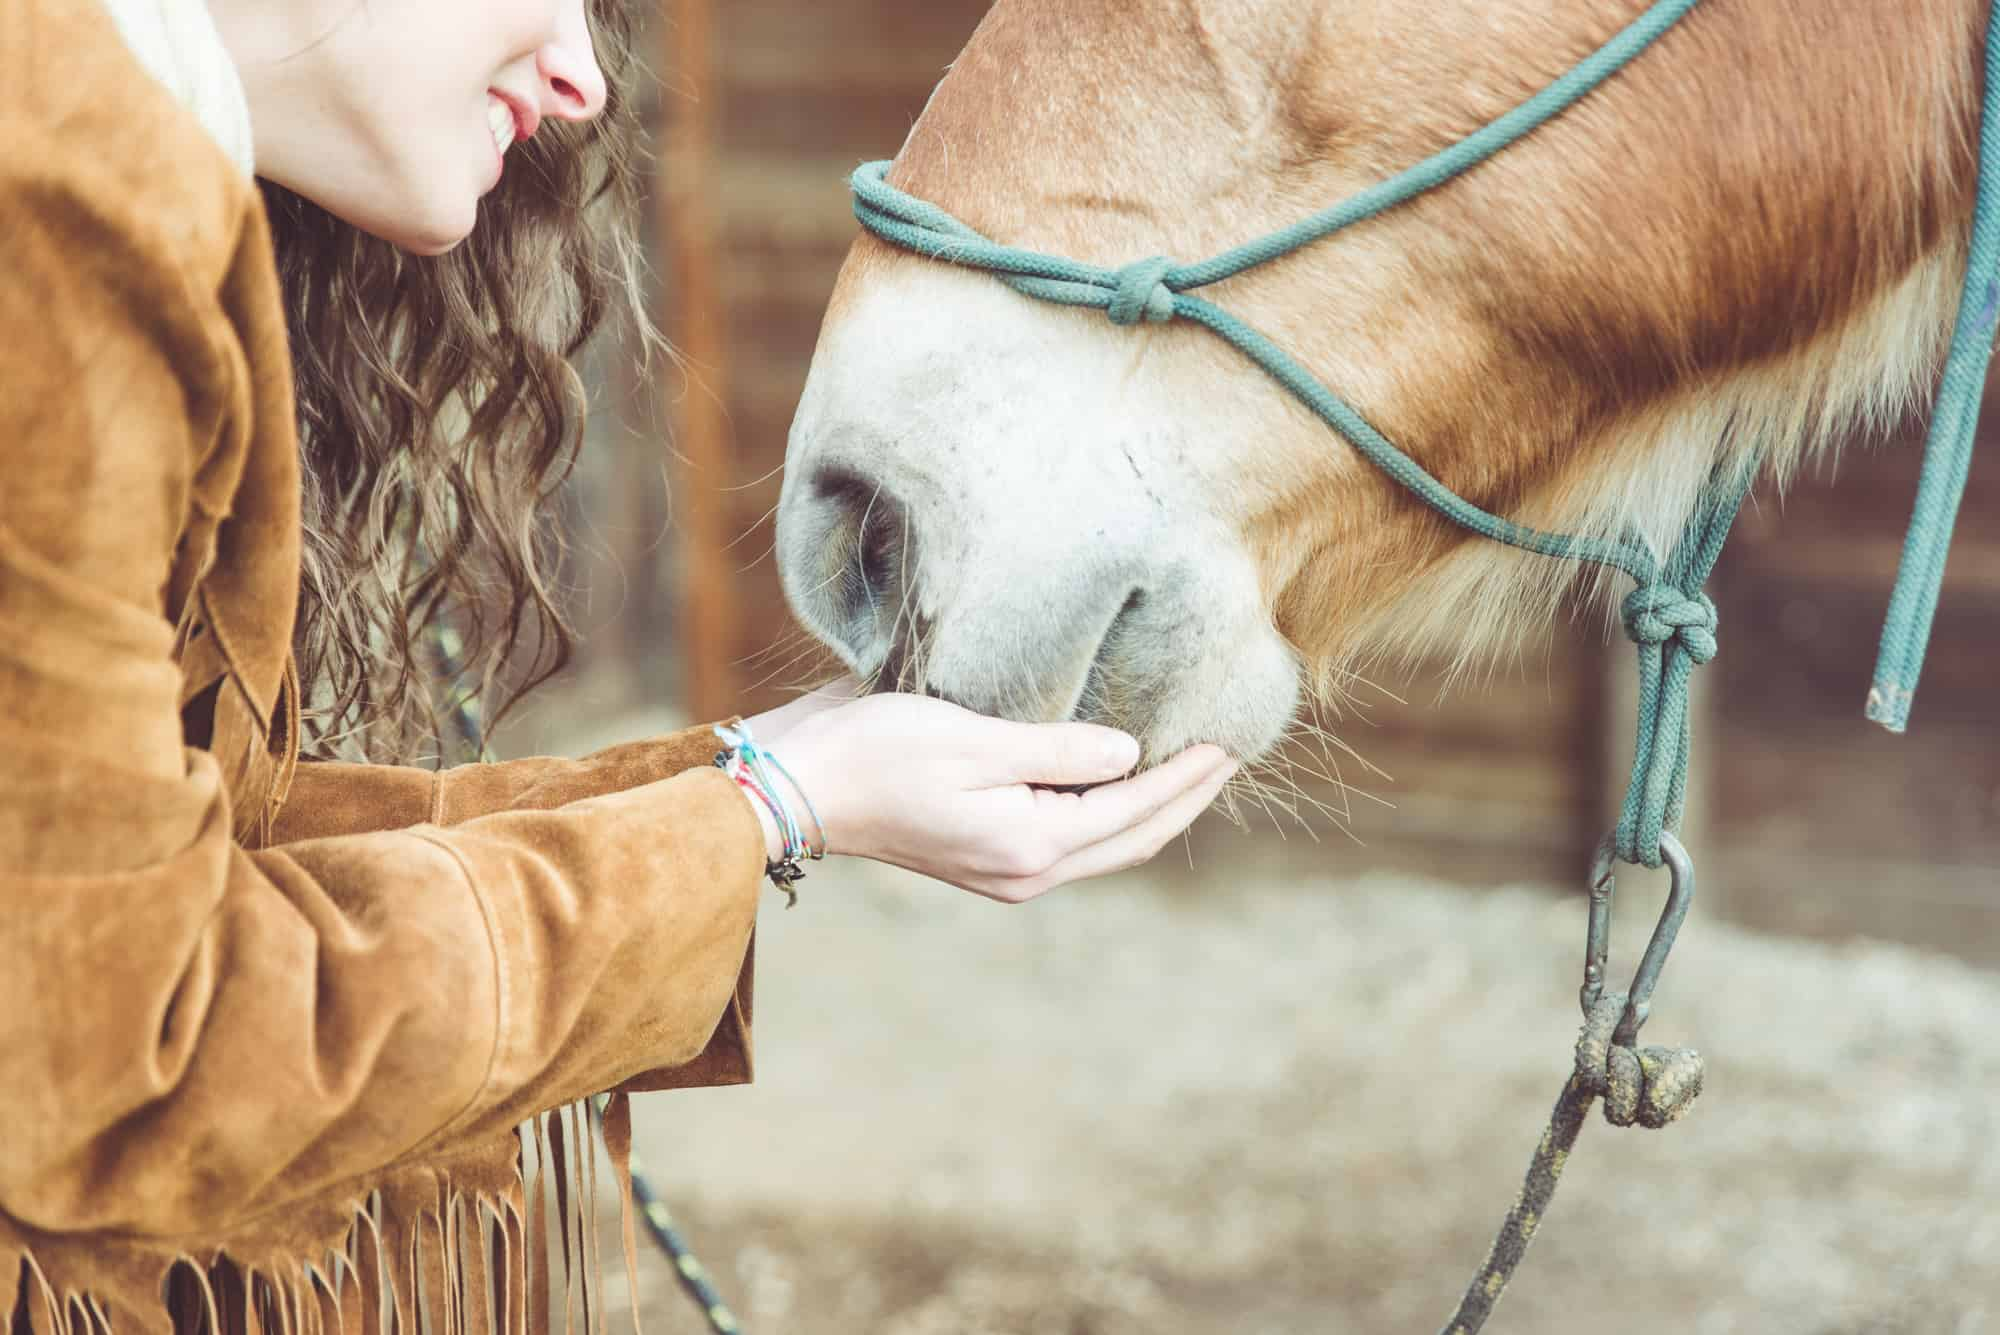 woman petting her horse. close up on hands and horse mouth. concept about animals